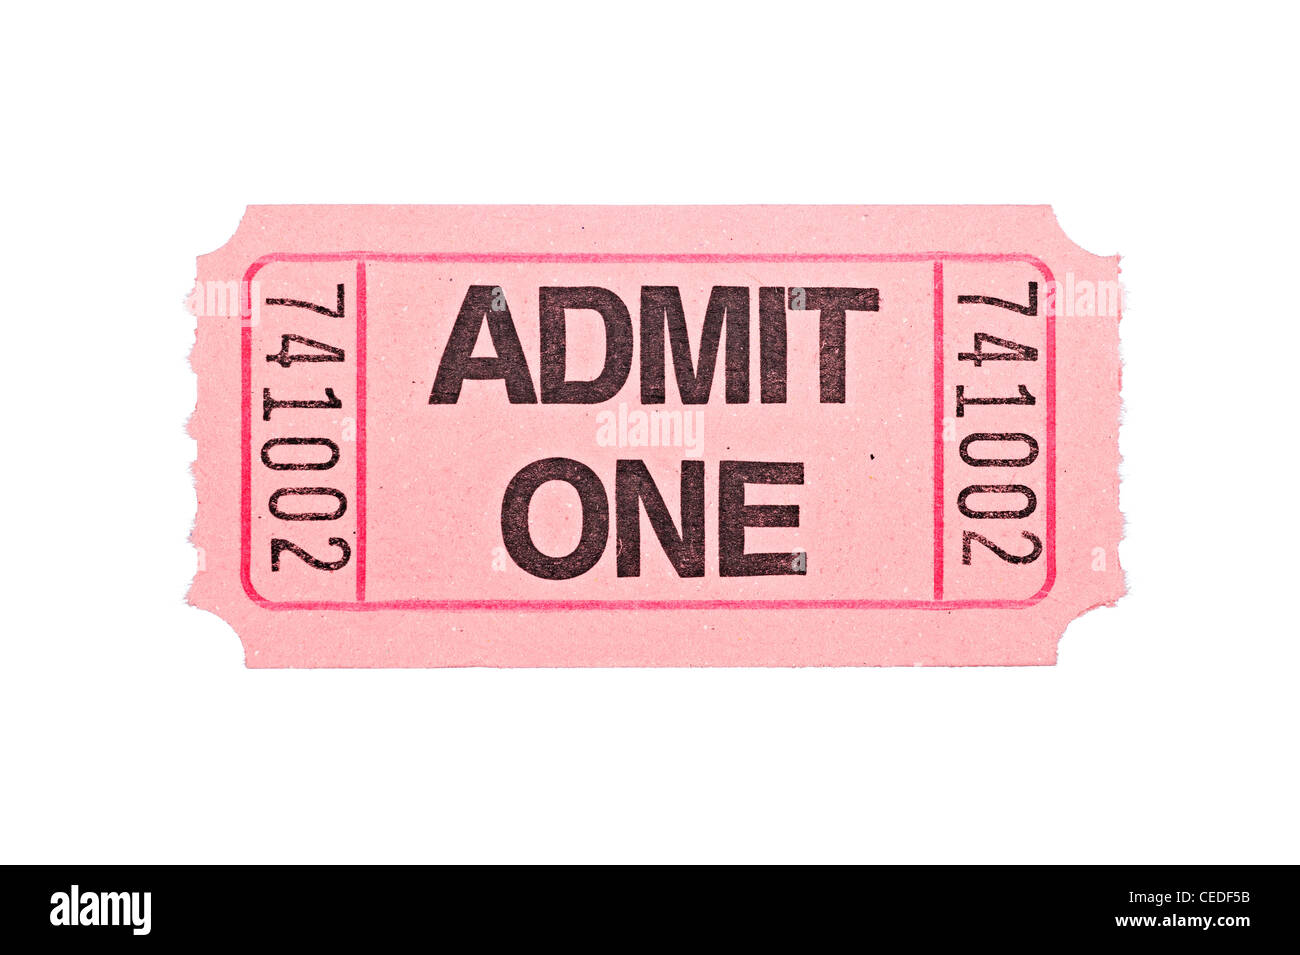 An admittance ticket isolated on a white background - Stock Image